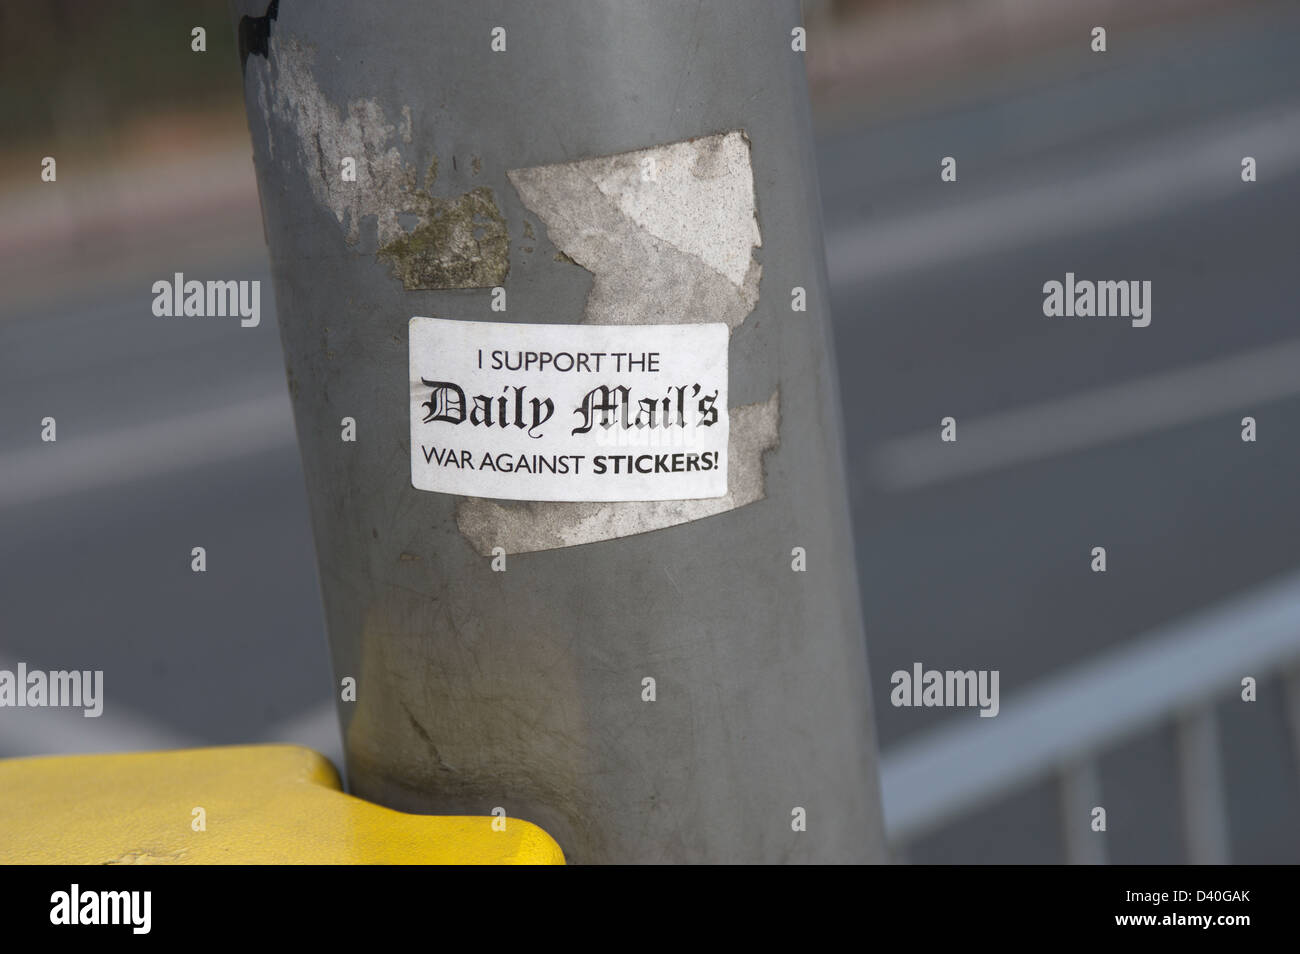 'I Support the Daily Mail's War Against Stickers' sticker on a lamppost. - Stock Image